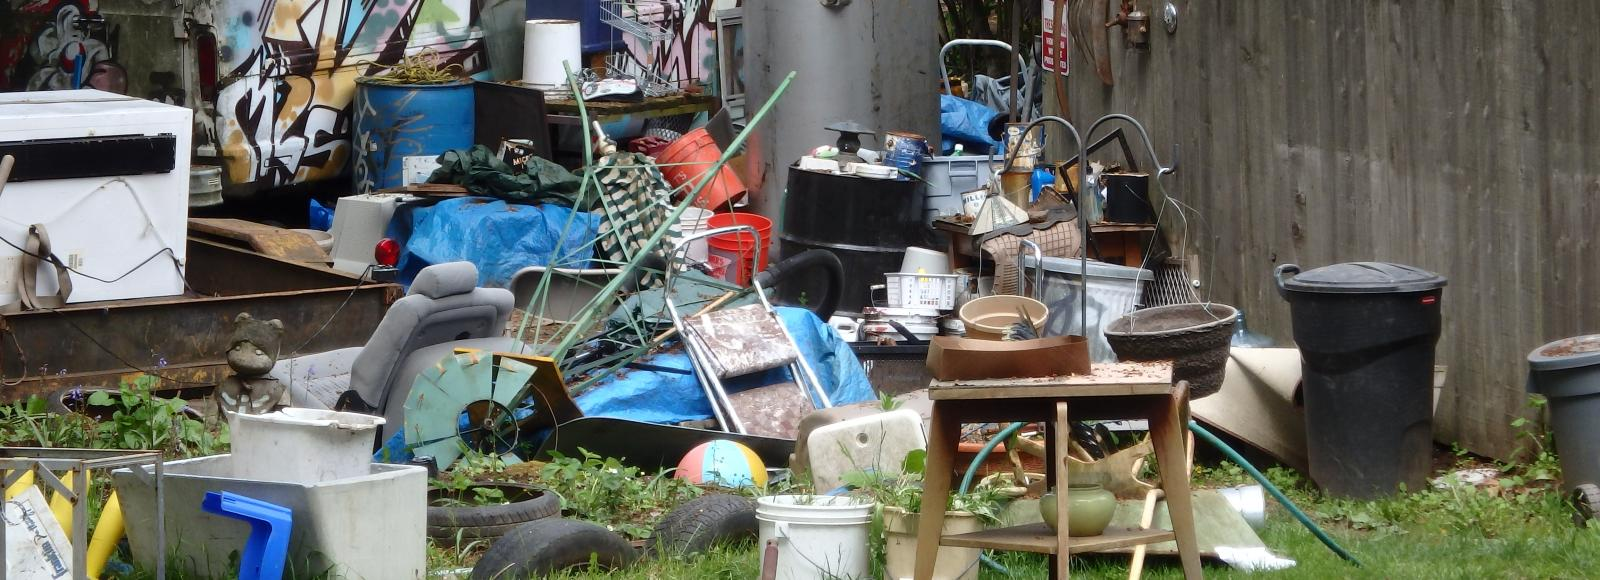 A backyard trash pile in the Cully Neighborhood.